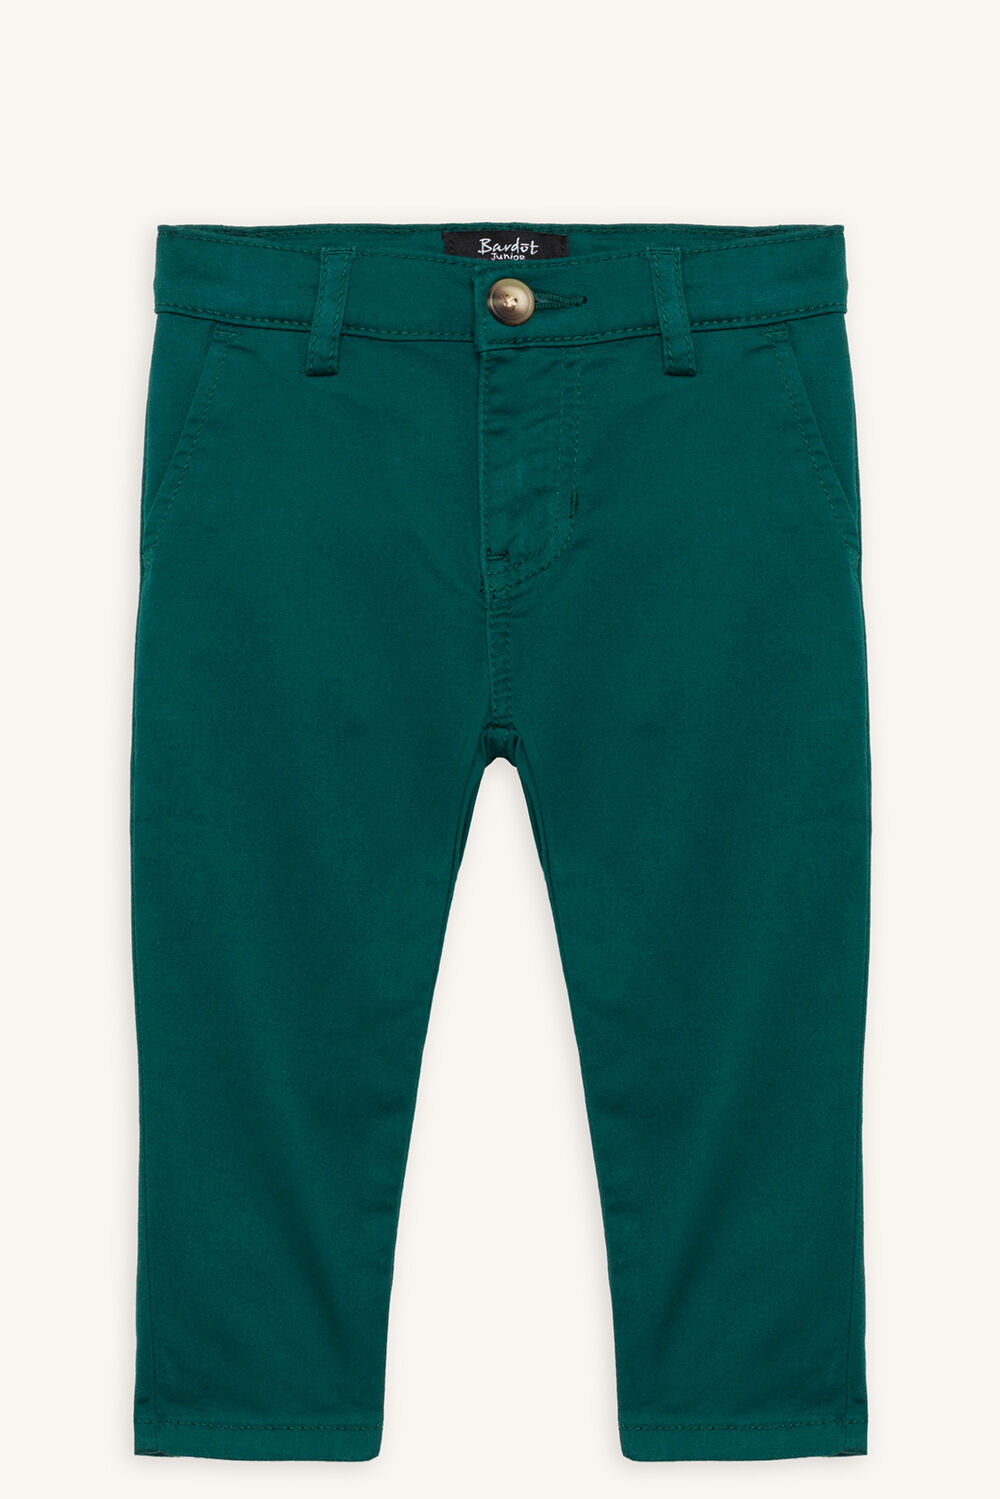 BABY BOY jack chino pant in colour BOSPHORUS